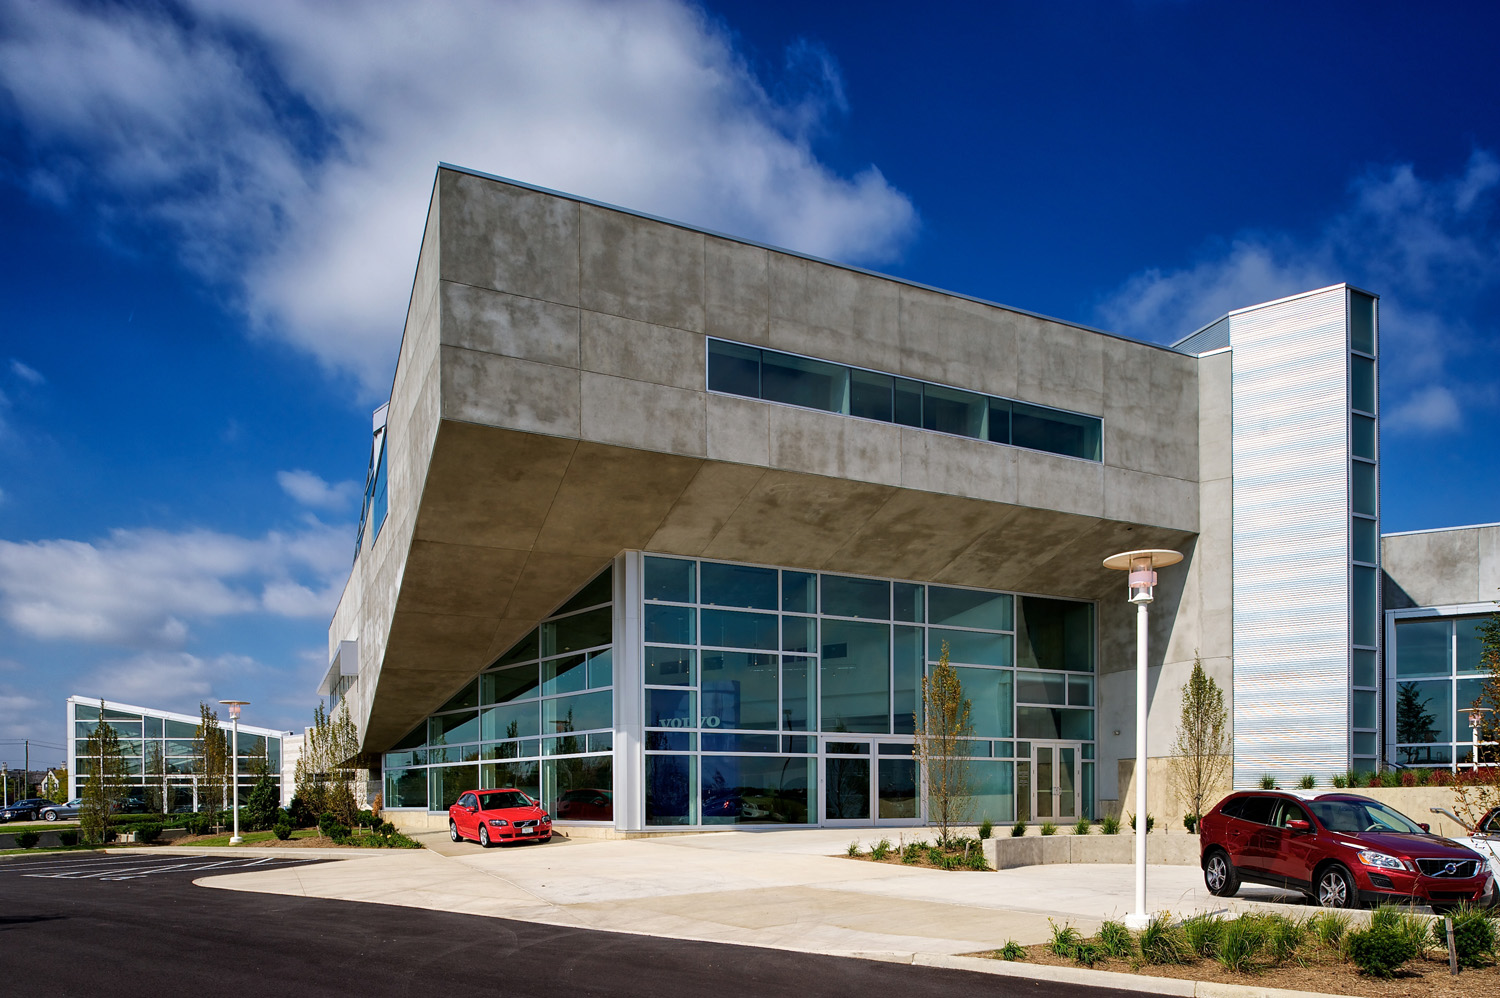 mag volvo archall architectural alliance architecture design firm in columbus oh mag volvo archall architectural alliance architecture design firm in columbus oh